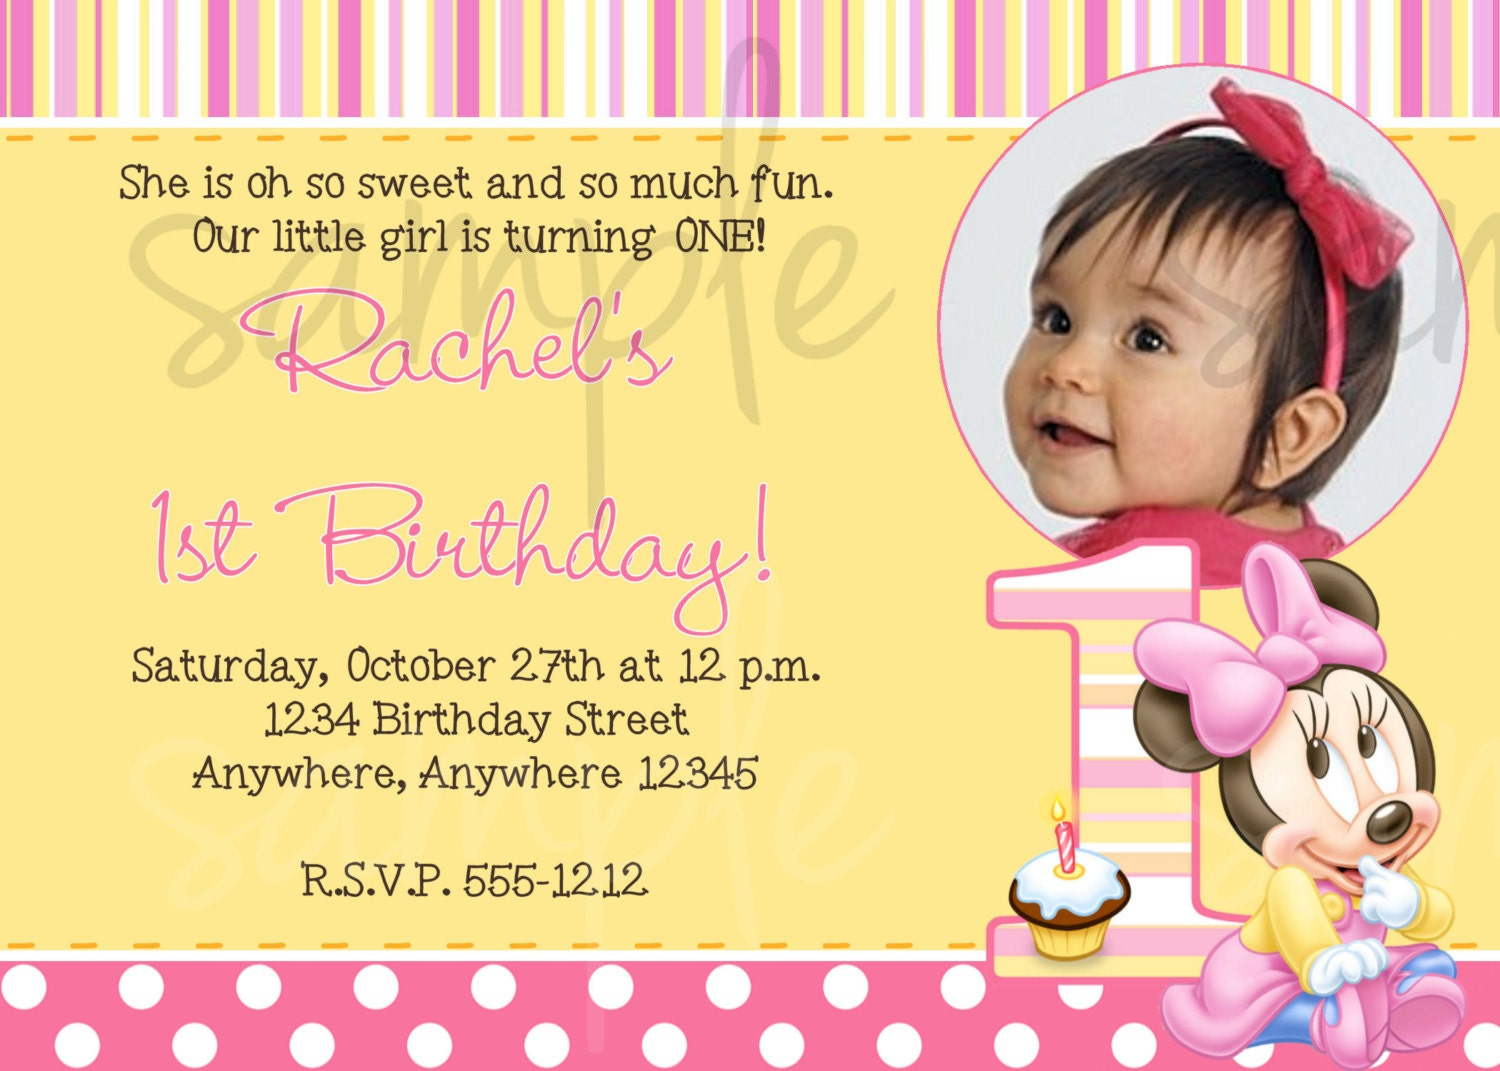 1St Birthday Invitations 13 Photos Of The Free Kids Birthday – 1st Birthday Invitation Templates Free